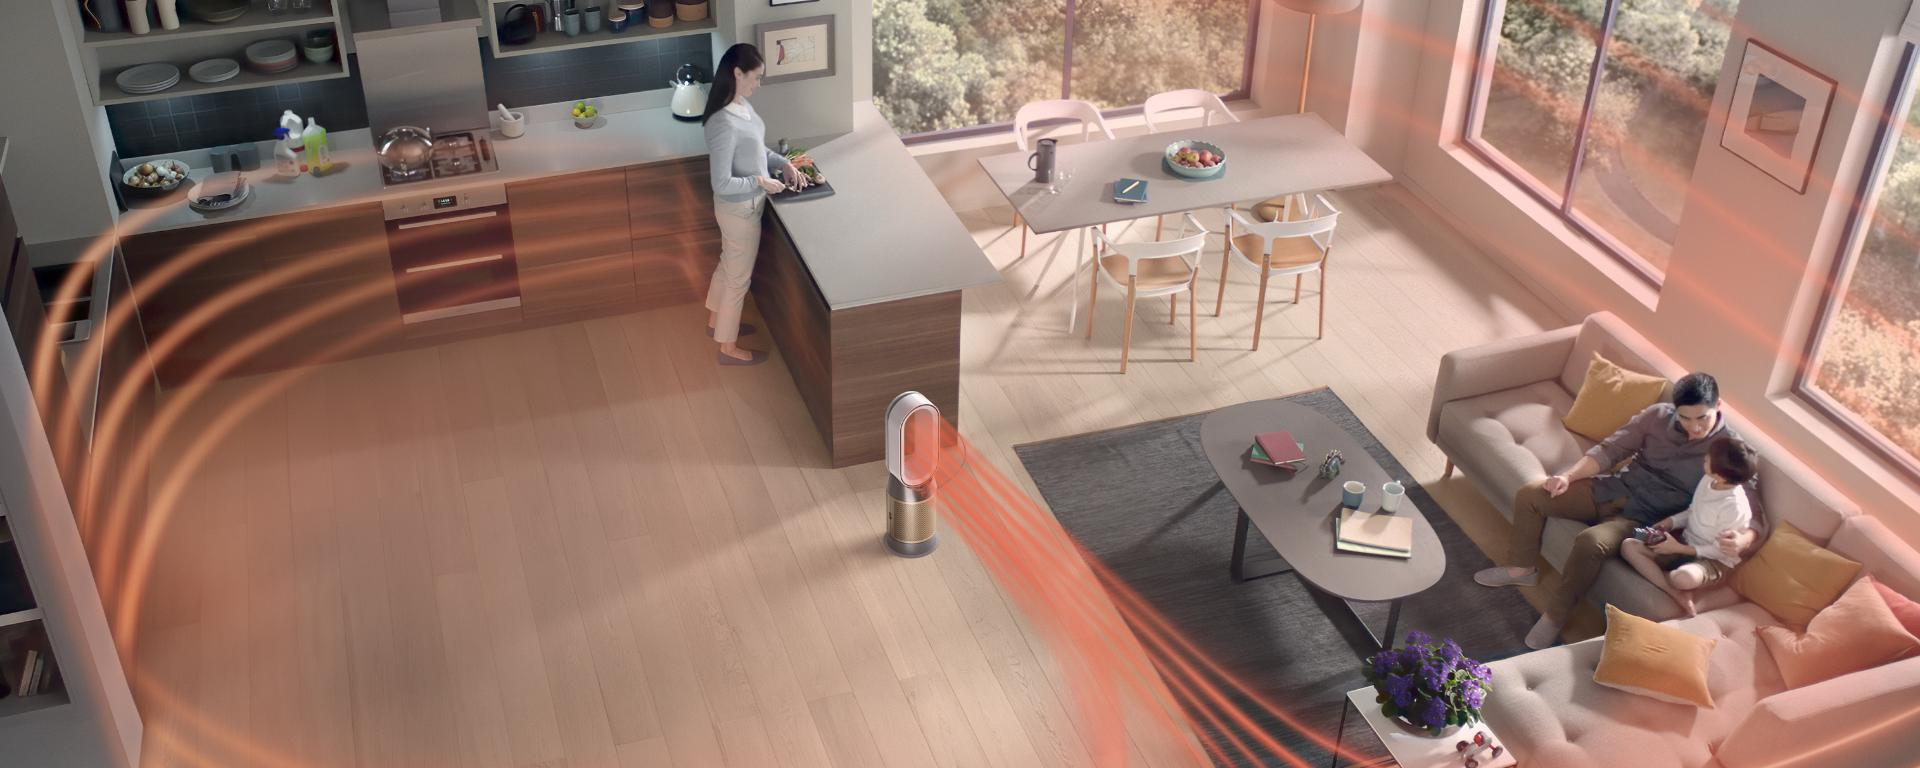 Dyson Purifer in large room